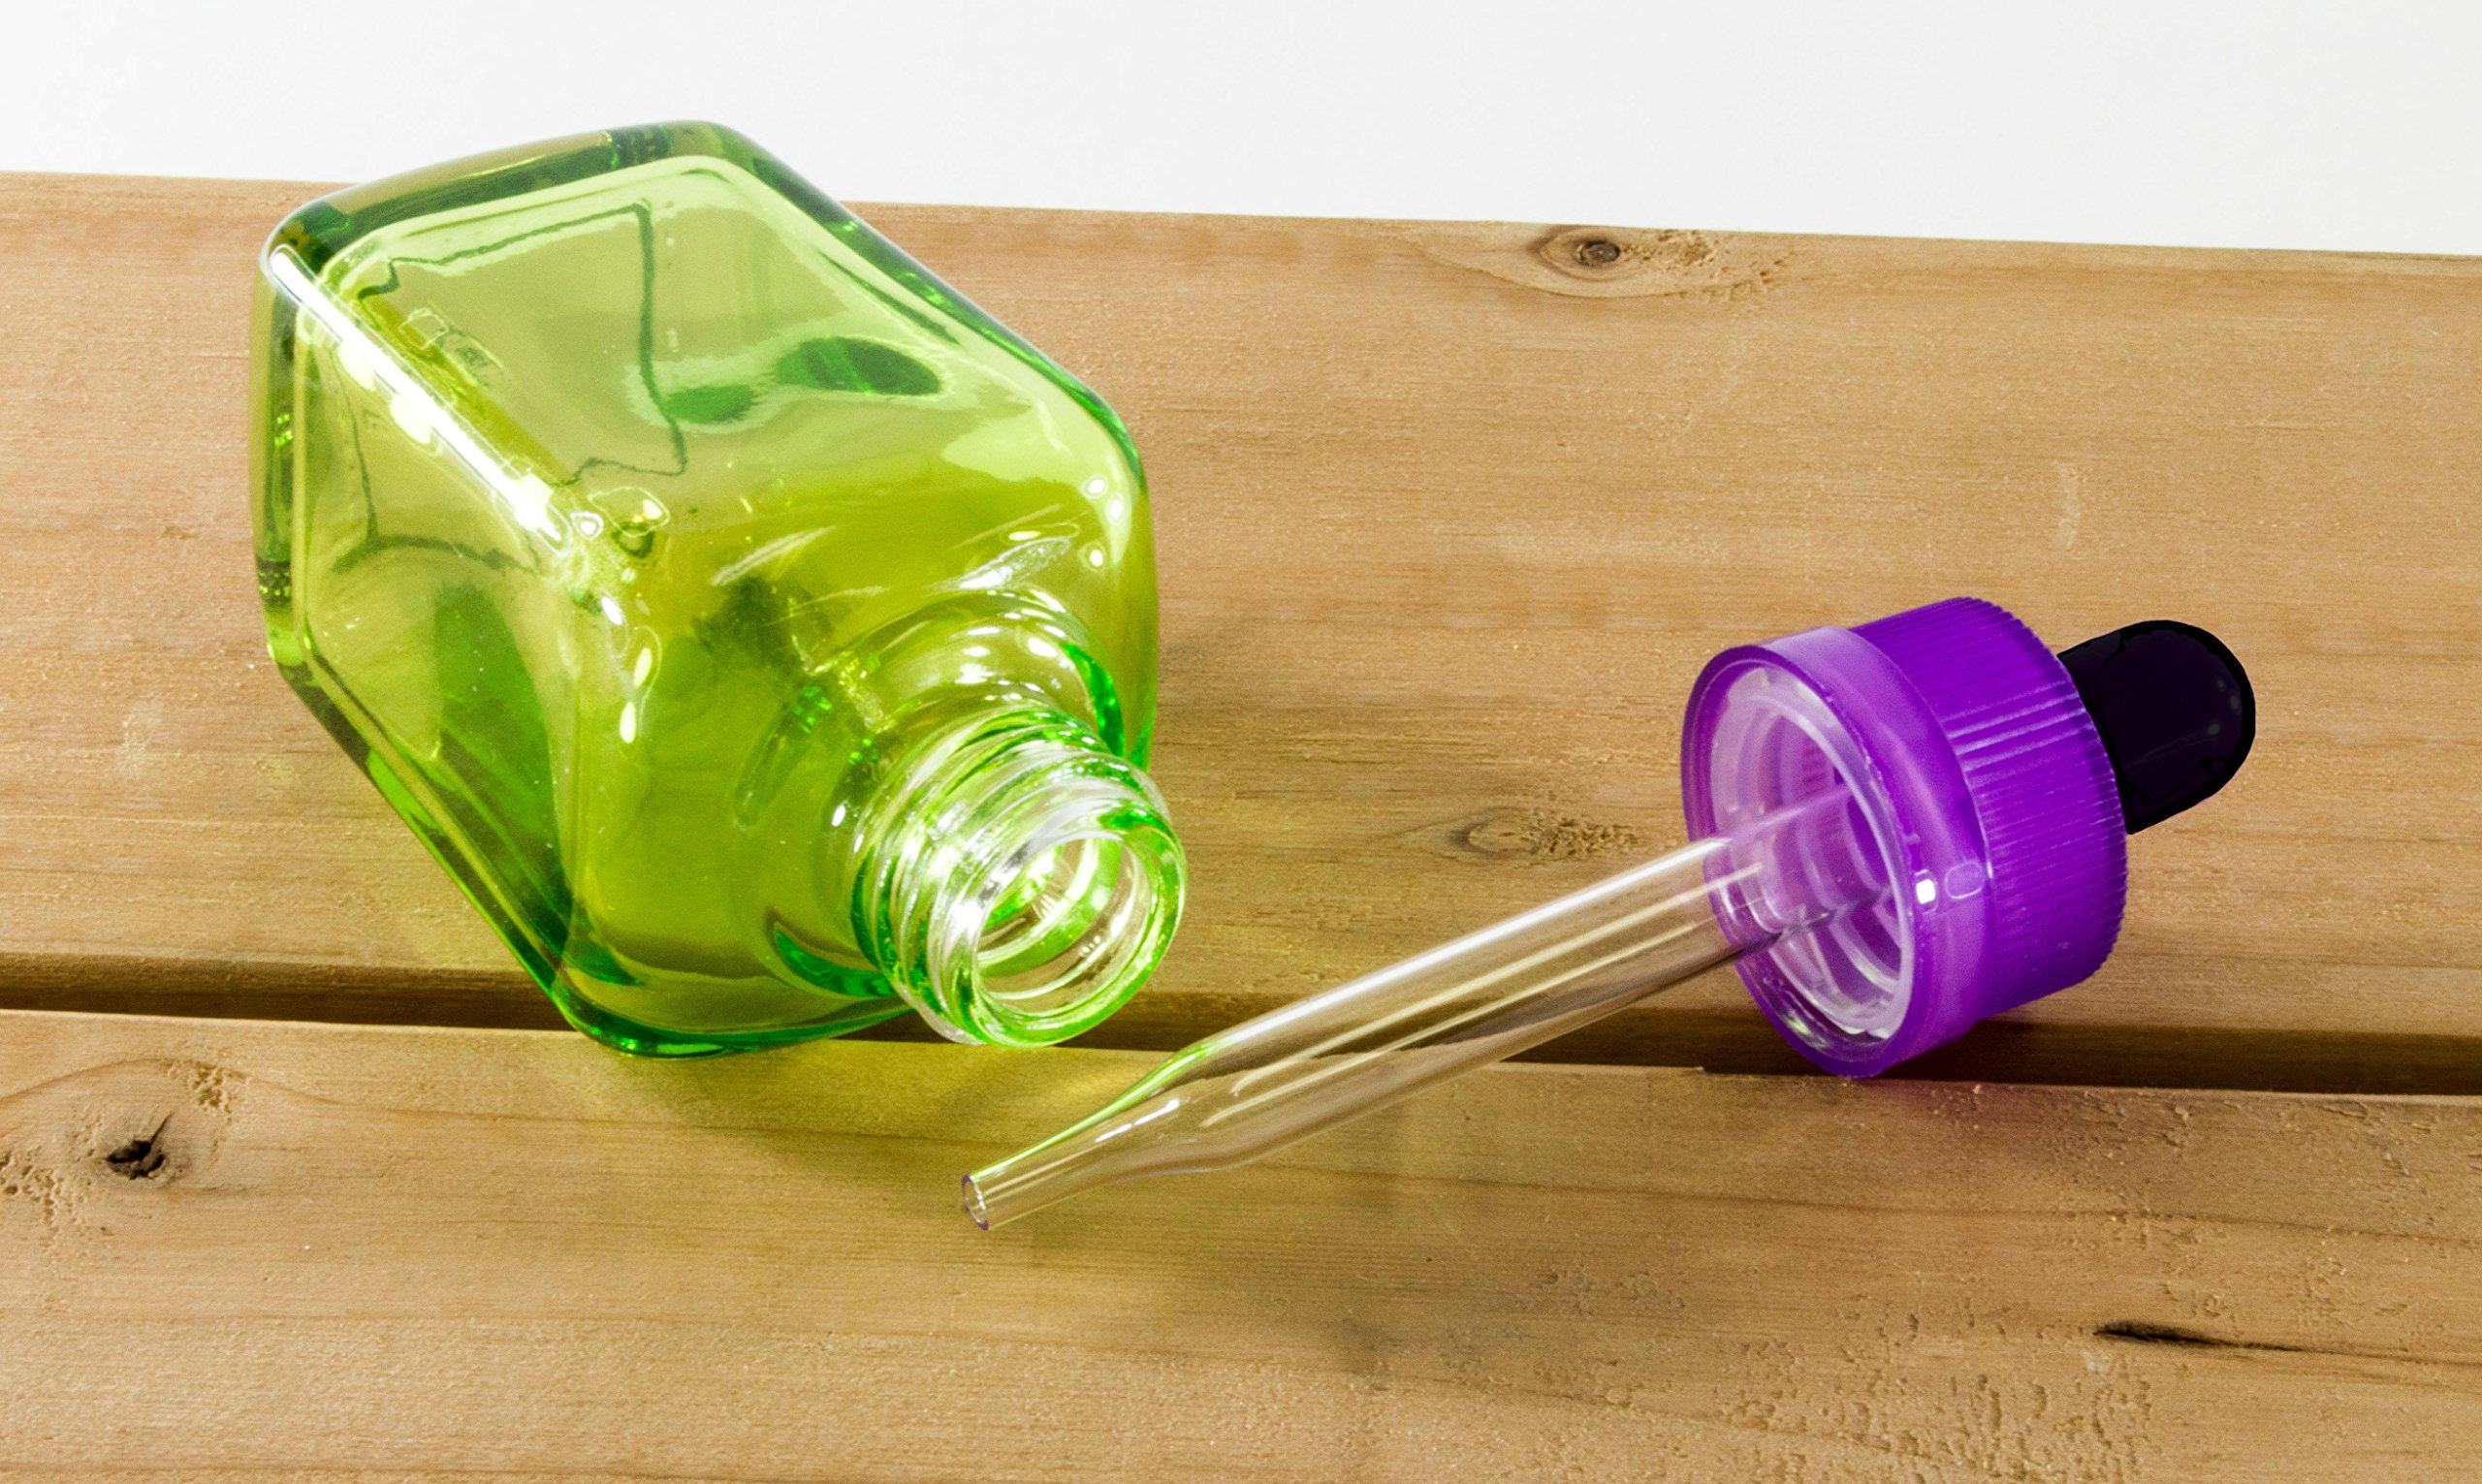 30ml Clear Green Glass Dropper Bottles with Purple and Black Tops (Pack of 10) by Science Purchase